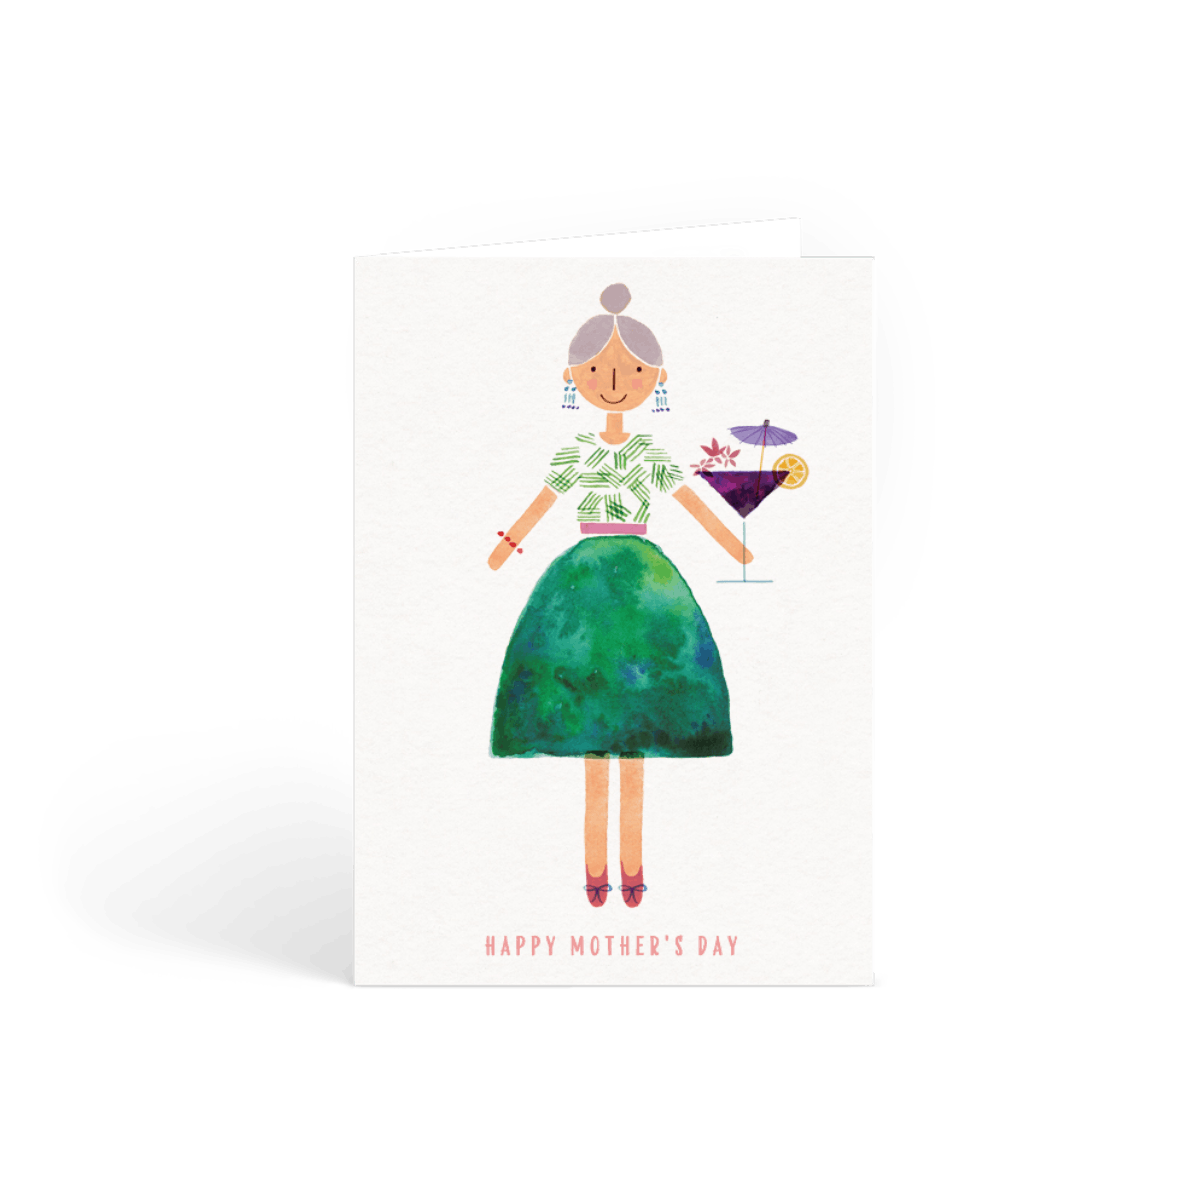 Https%3a%2f%2fwww.papier.com%2fproduct image%2f4403%2f2%2fcocktail lady 1153 front 1454946893.png?ixlib=rb 1.1